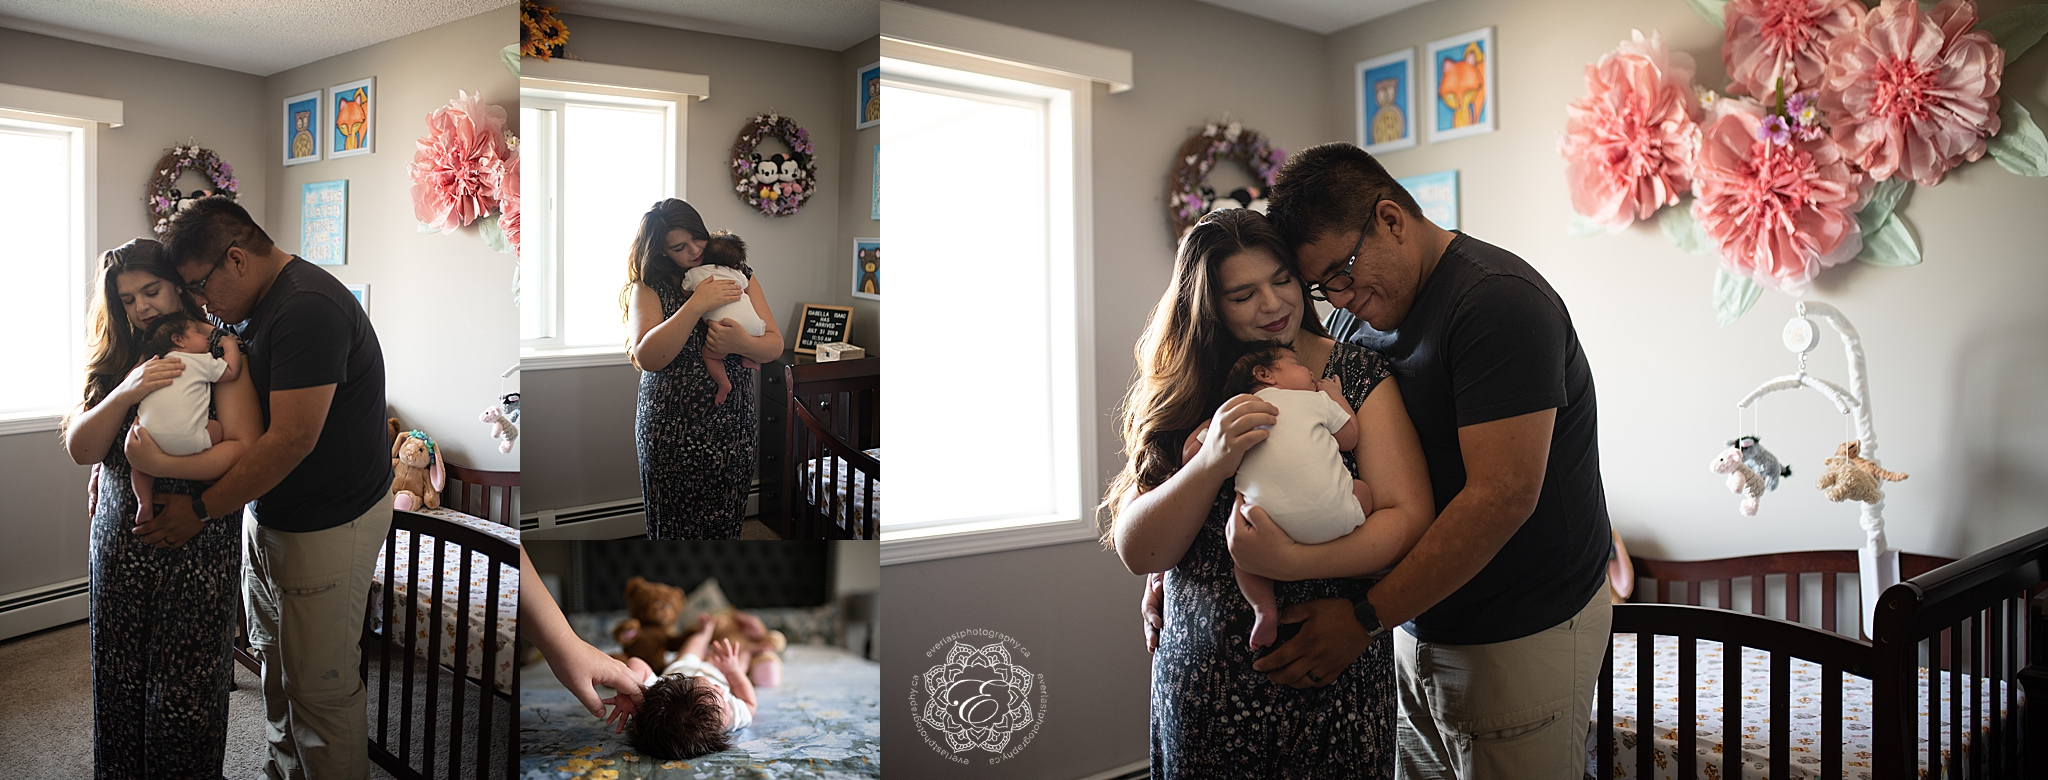 baby-family-photographers-edmonton.jpg